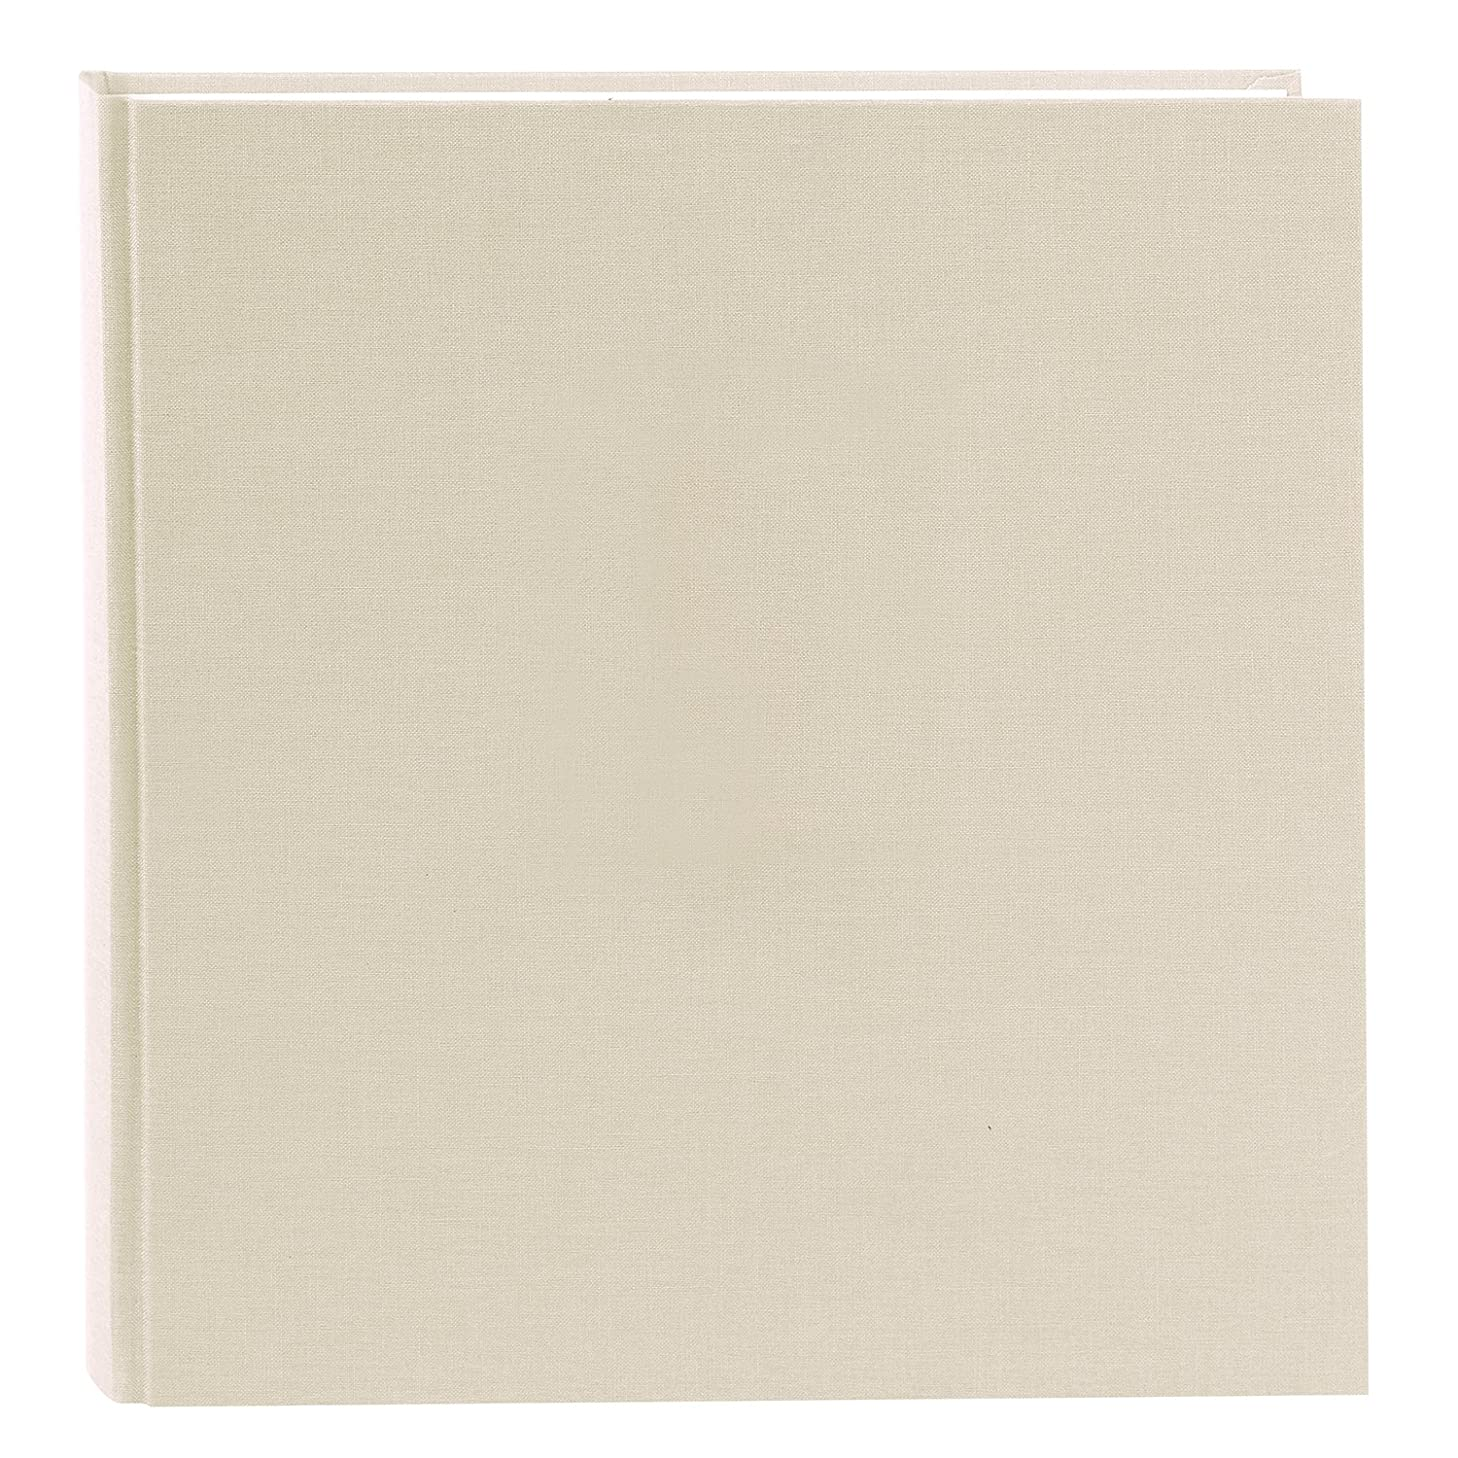 Goldbuch Photo Album Summertime Trend 2, 30?x 31?cm with 60?White Pages with Pergamine Dividers, Linen, Beige, 27605